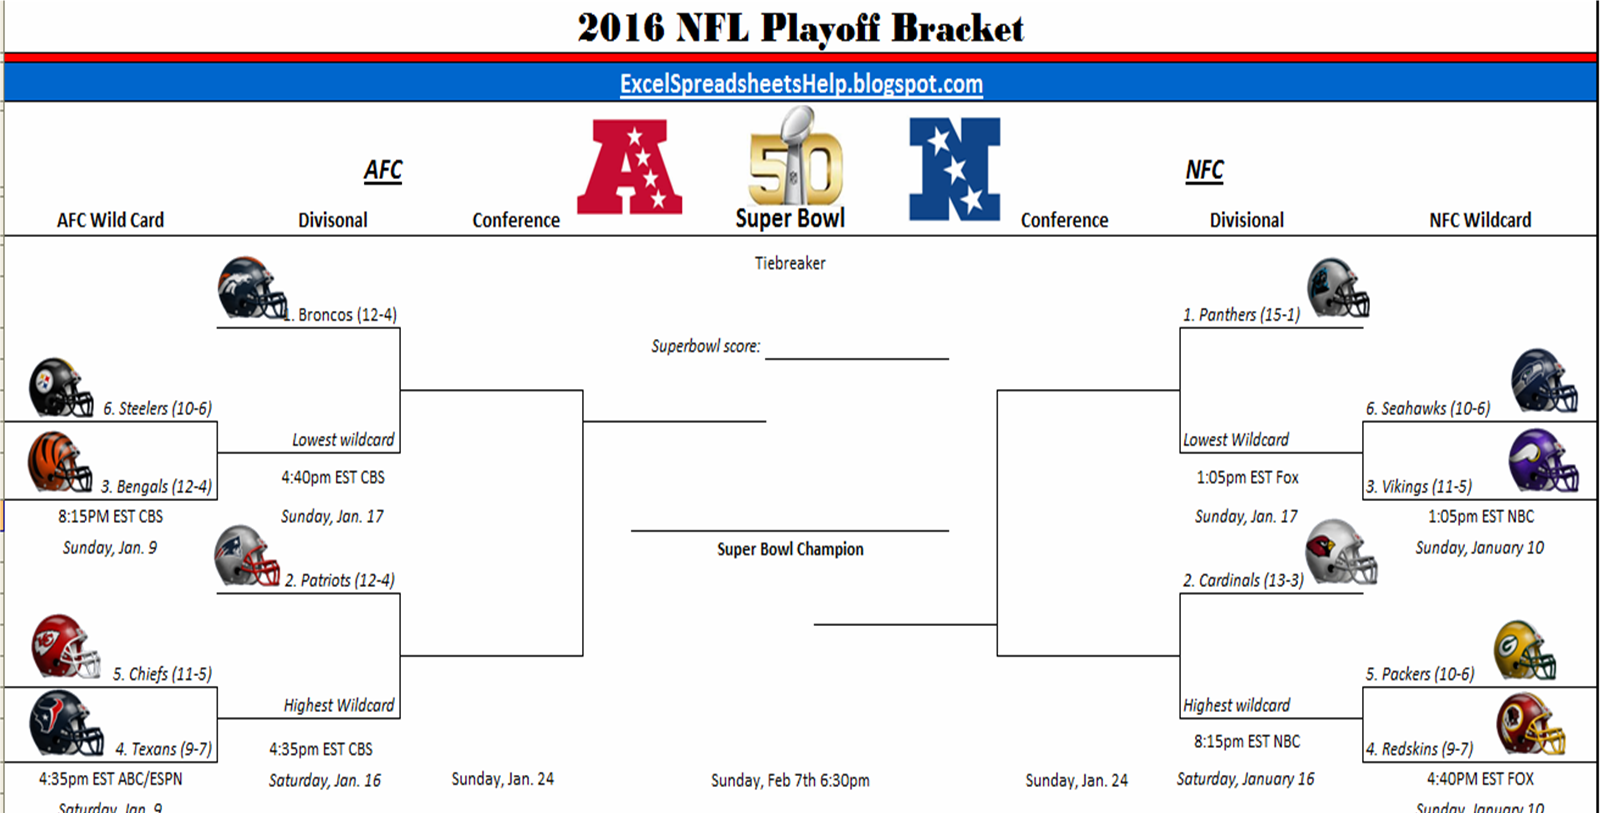 graphic relating to Nfl Playoff Brackets Printable named Excel Spreadsheets Assist: Printable 2016 NFL Playoff Bracket